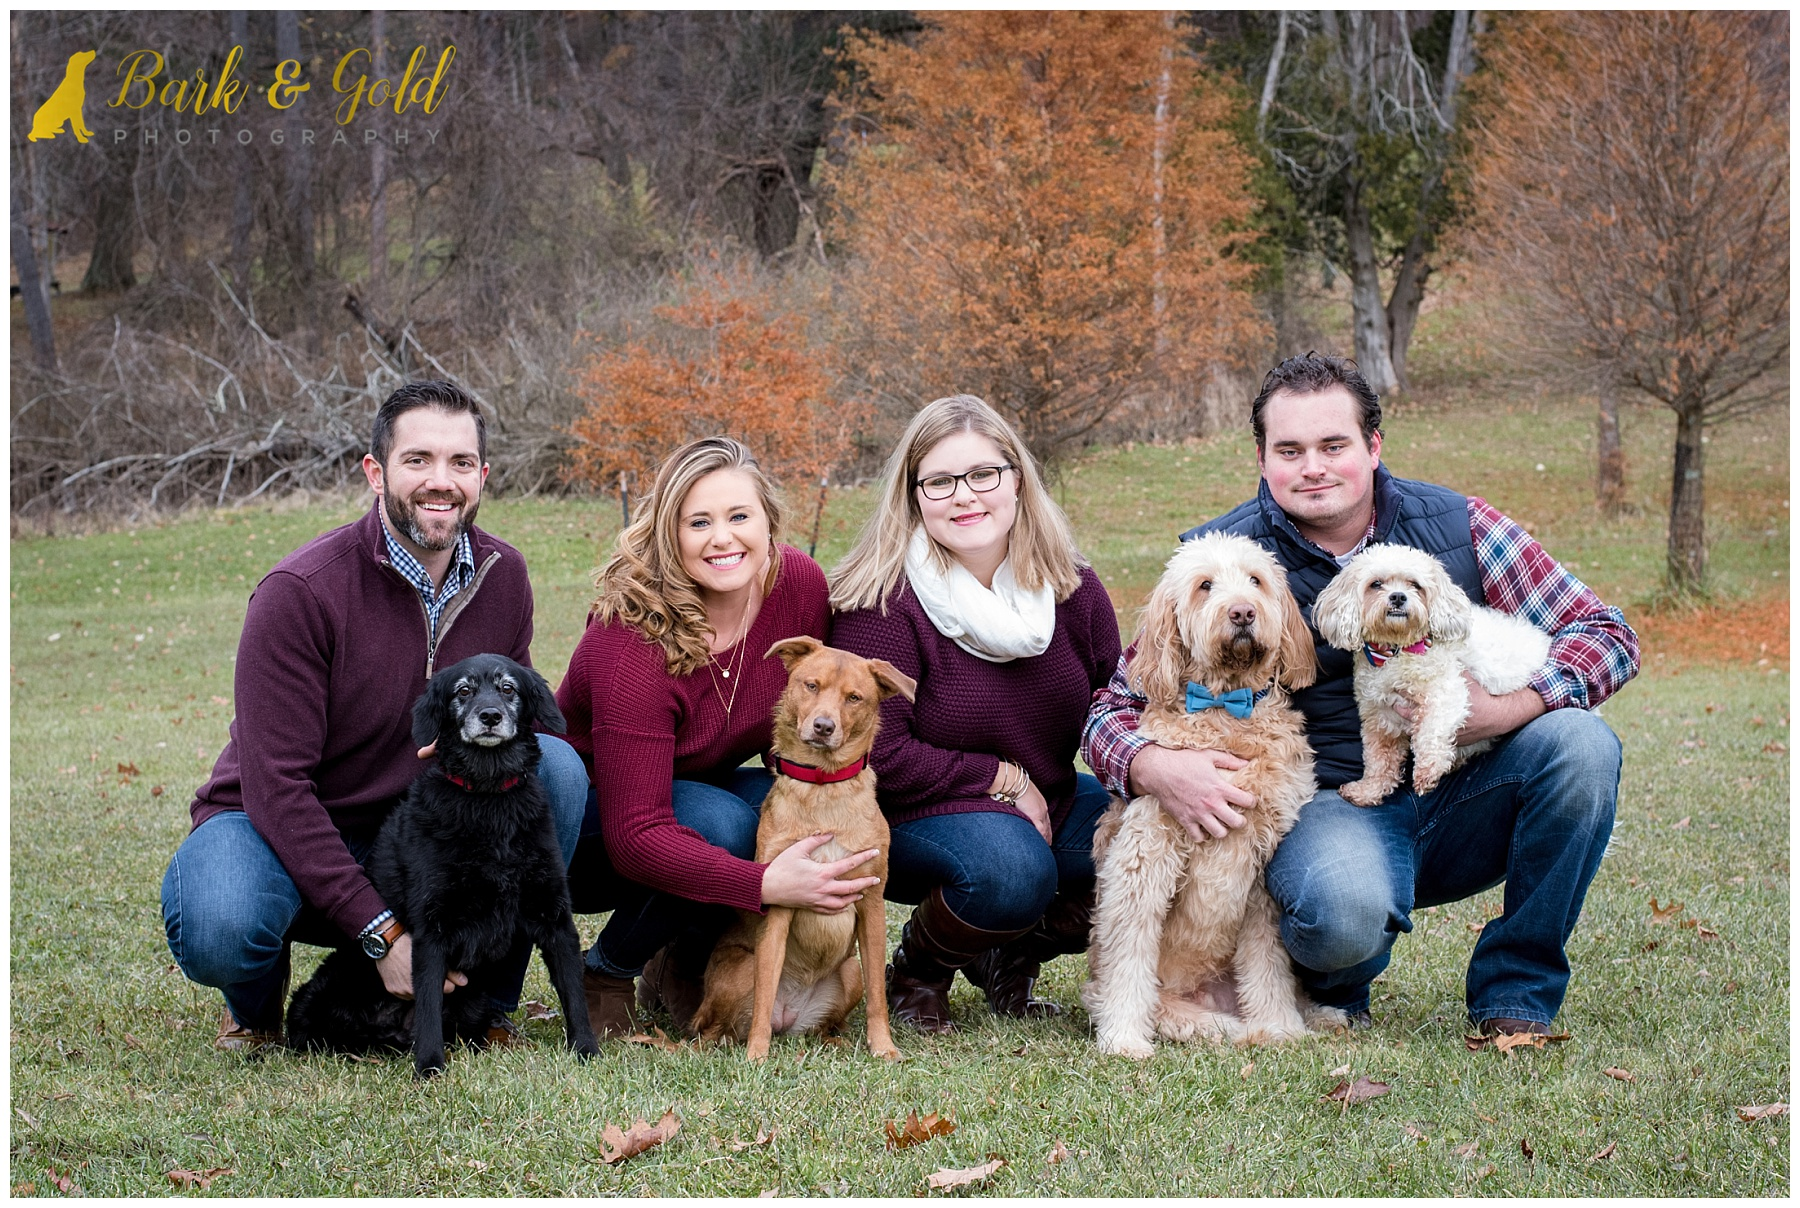 siblings pose with four dogs in a field during a fall portrait session at North Park in Gibsonia